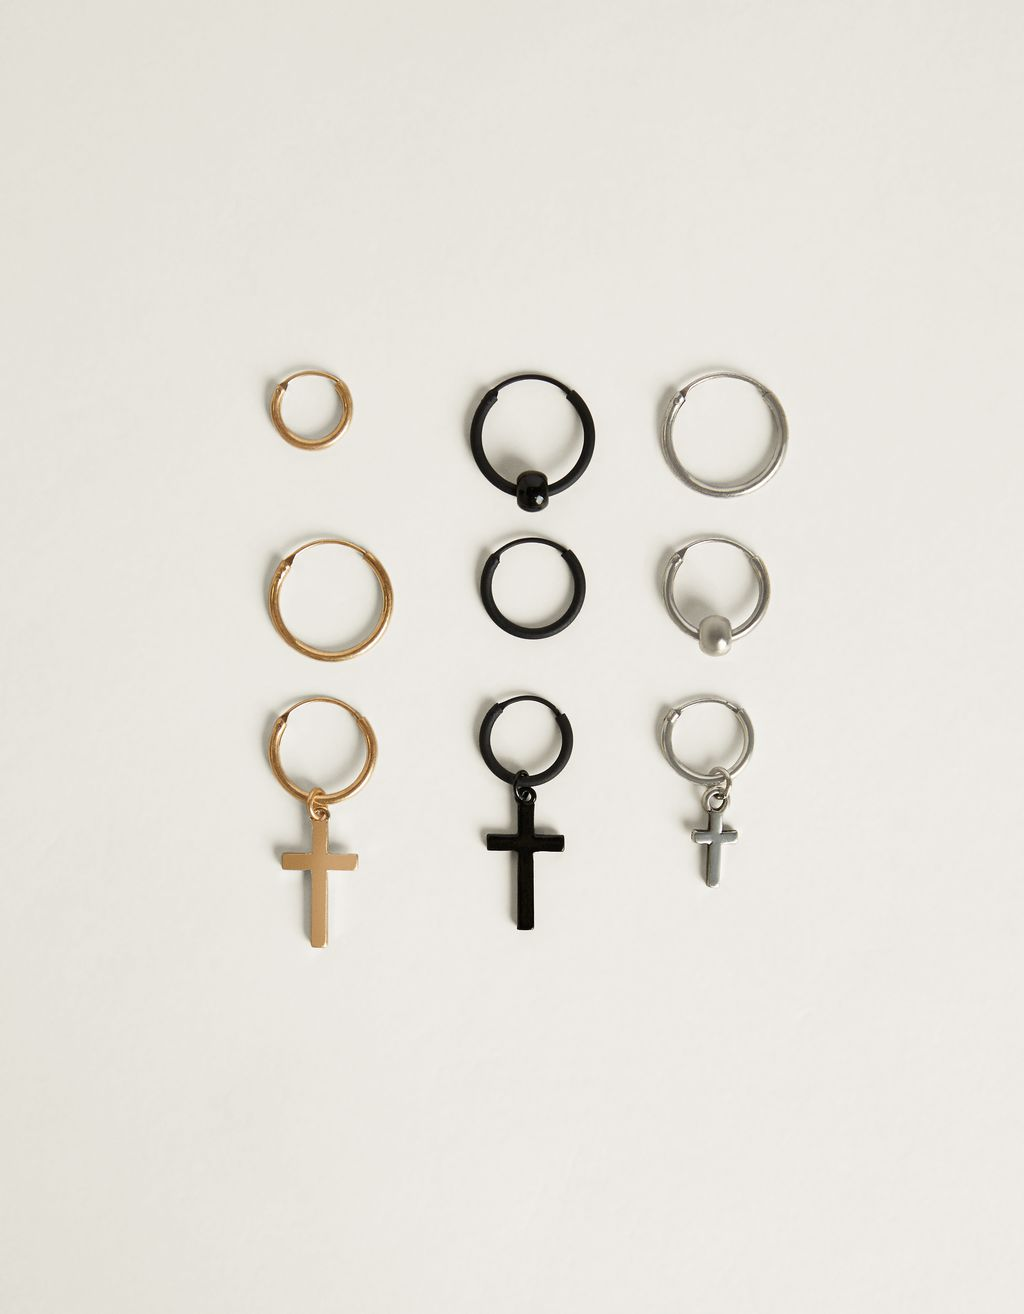 Set of cross earrings